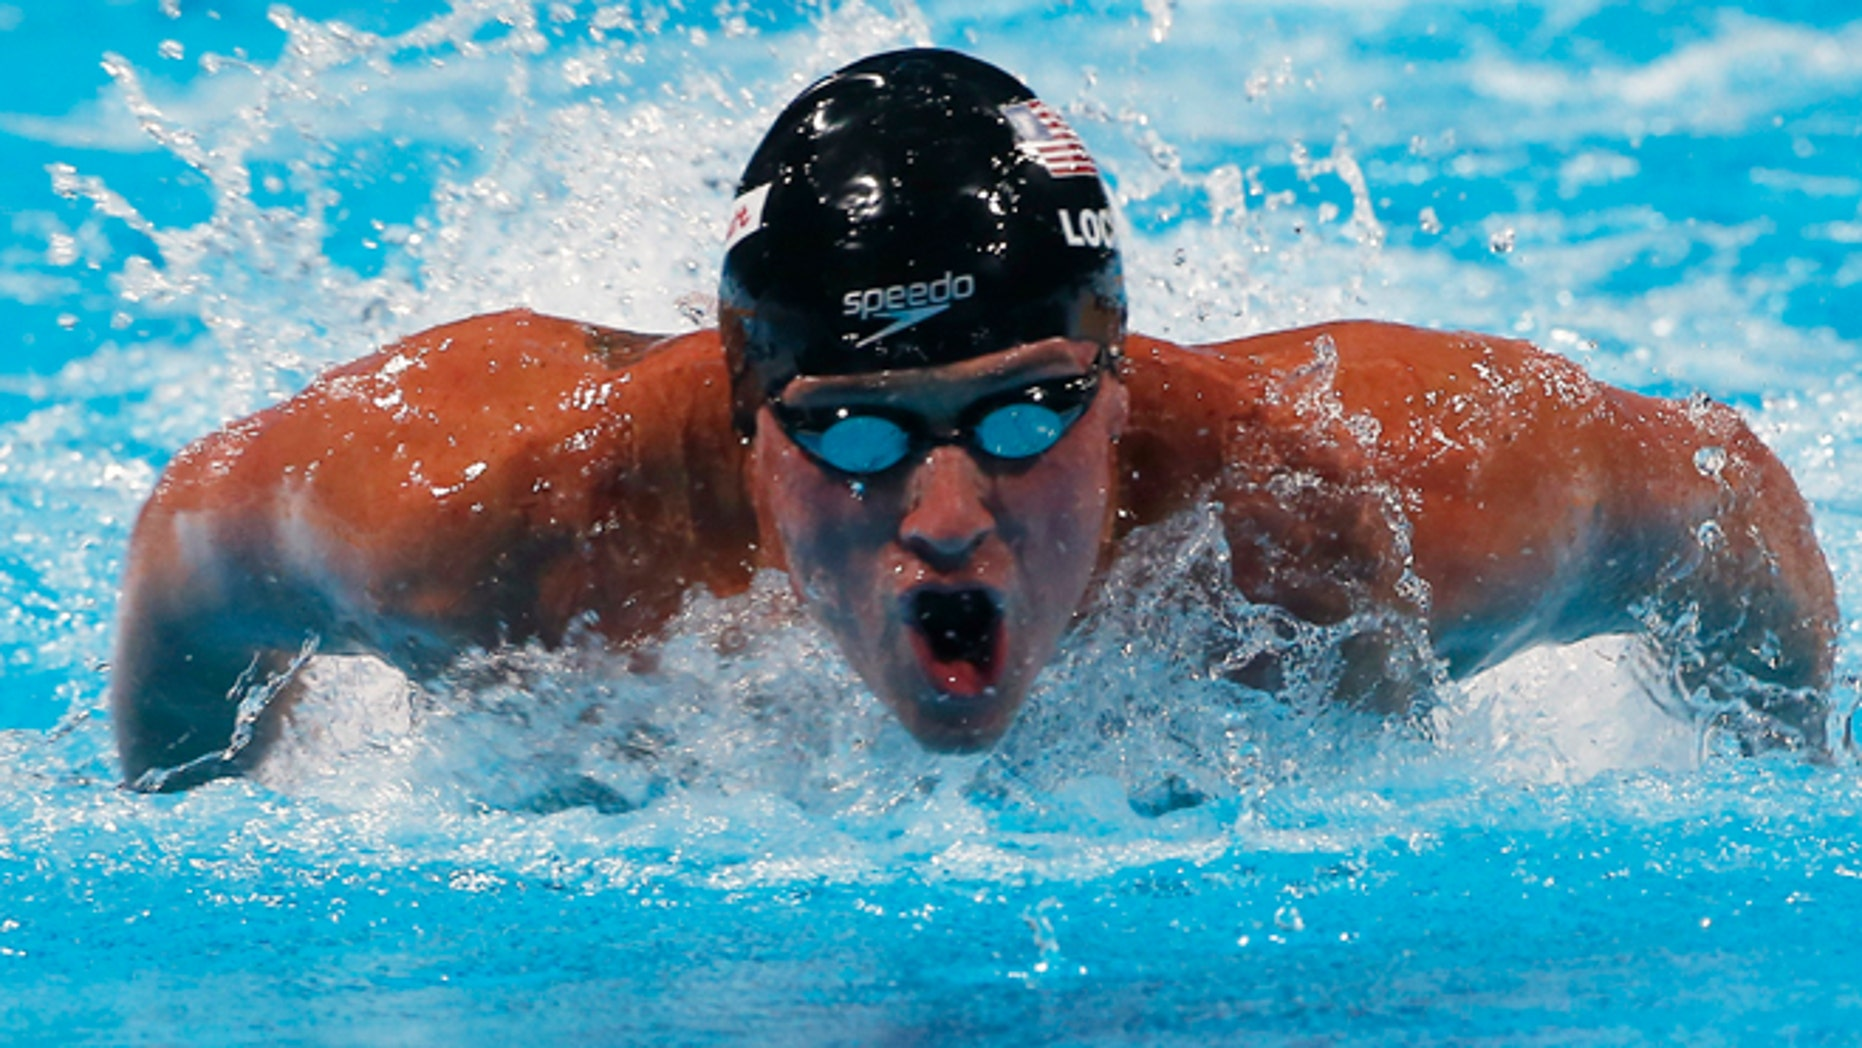 Aug 3, 2013: Ryan Lochte of the U.S. swims in the men's 100m butterfly final during the World Swimming Championships at the Sant Jordi arena in Barcelona.